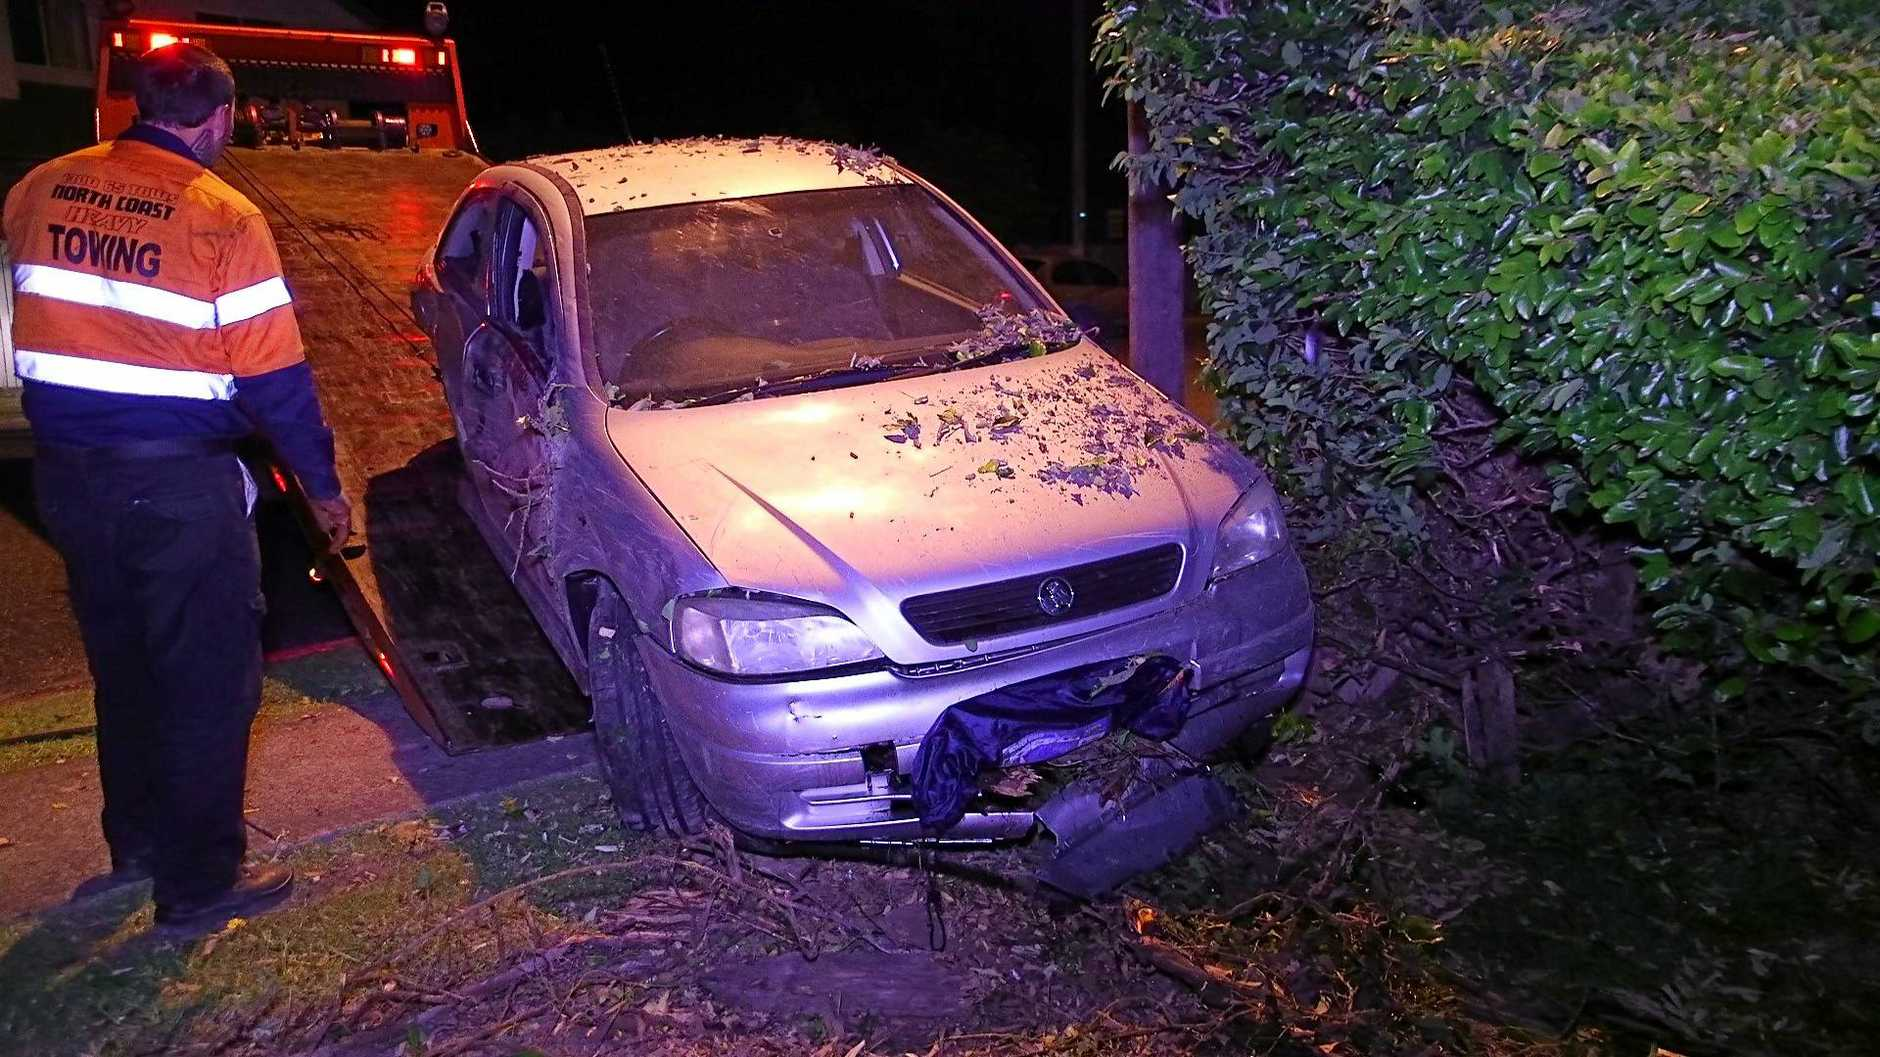 The teenager was rushed to hospital after her car crashed just after midnight.